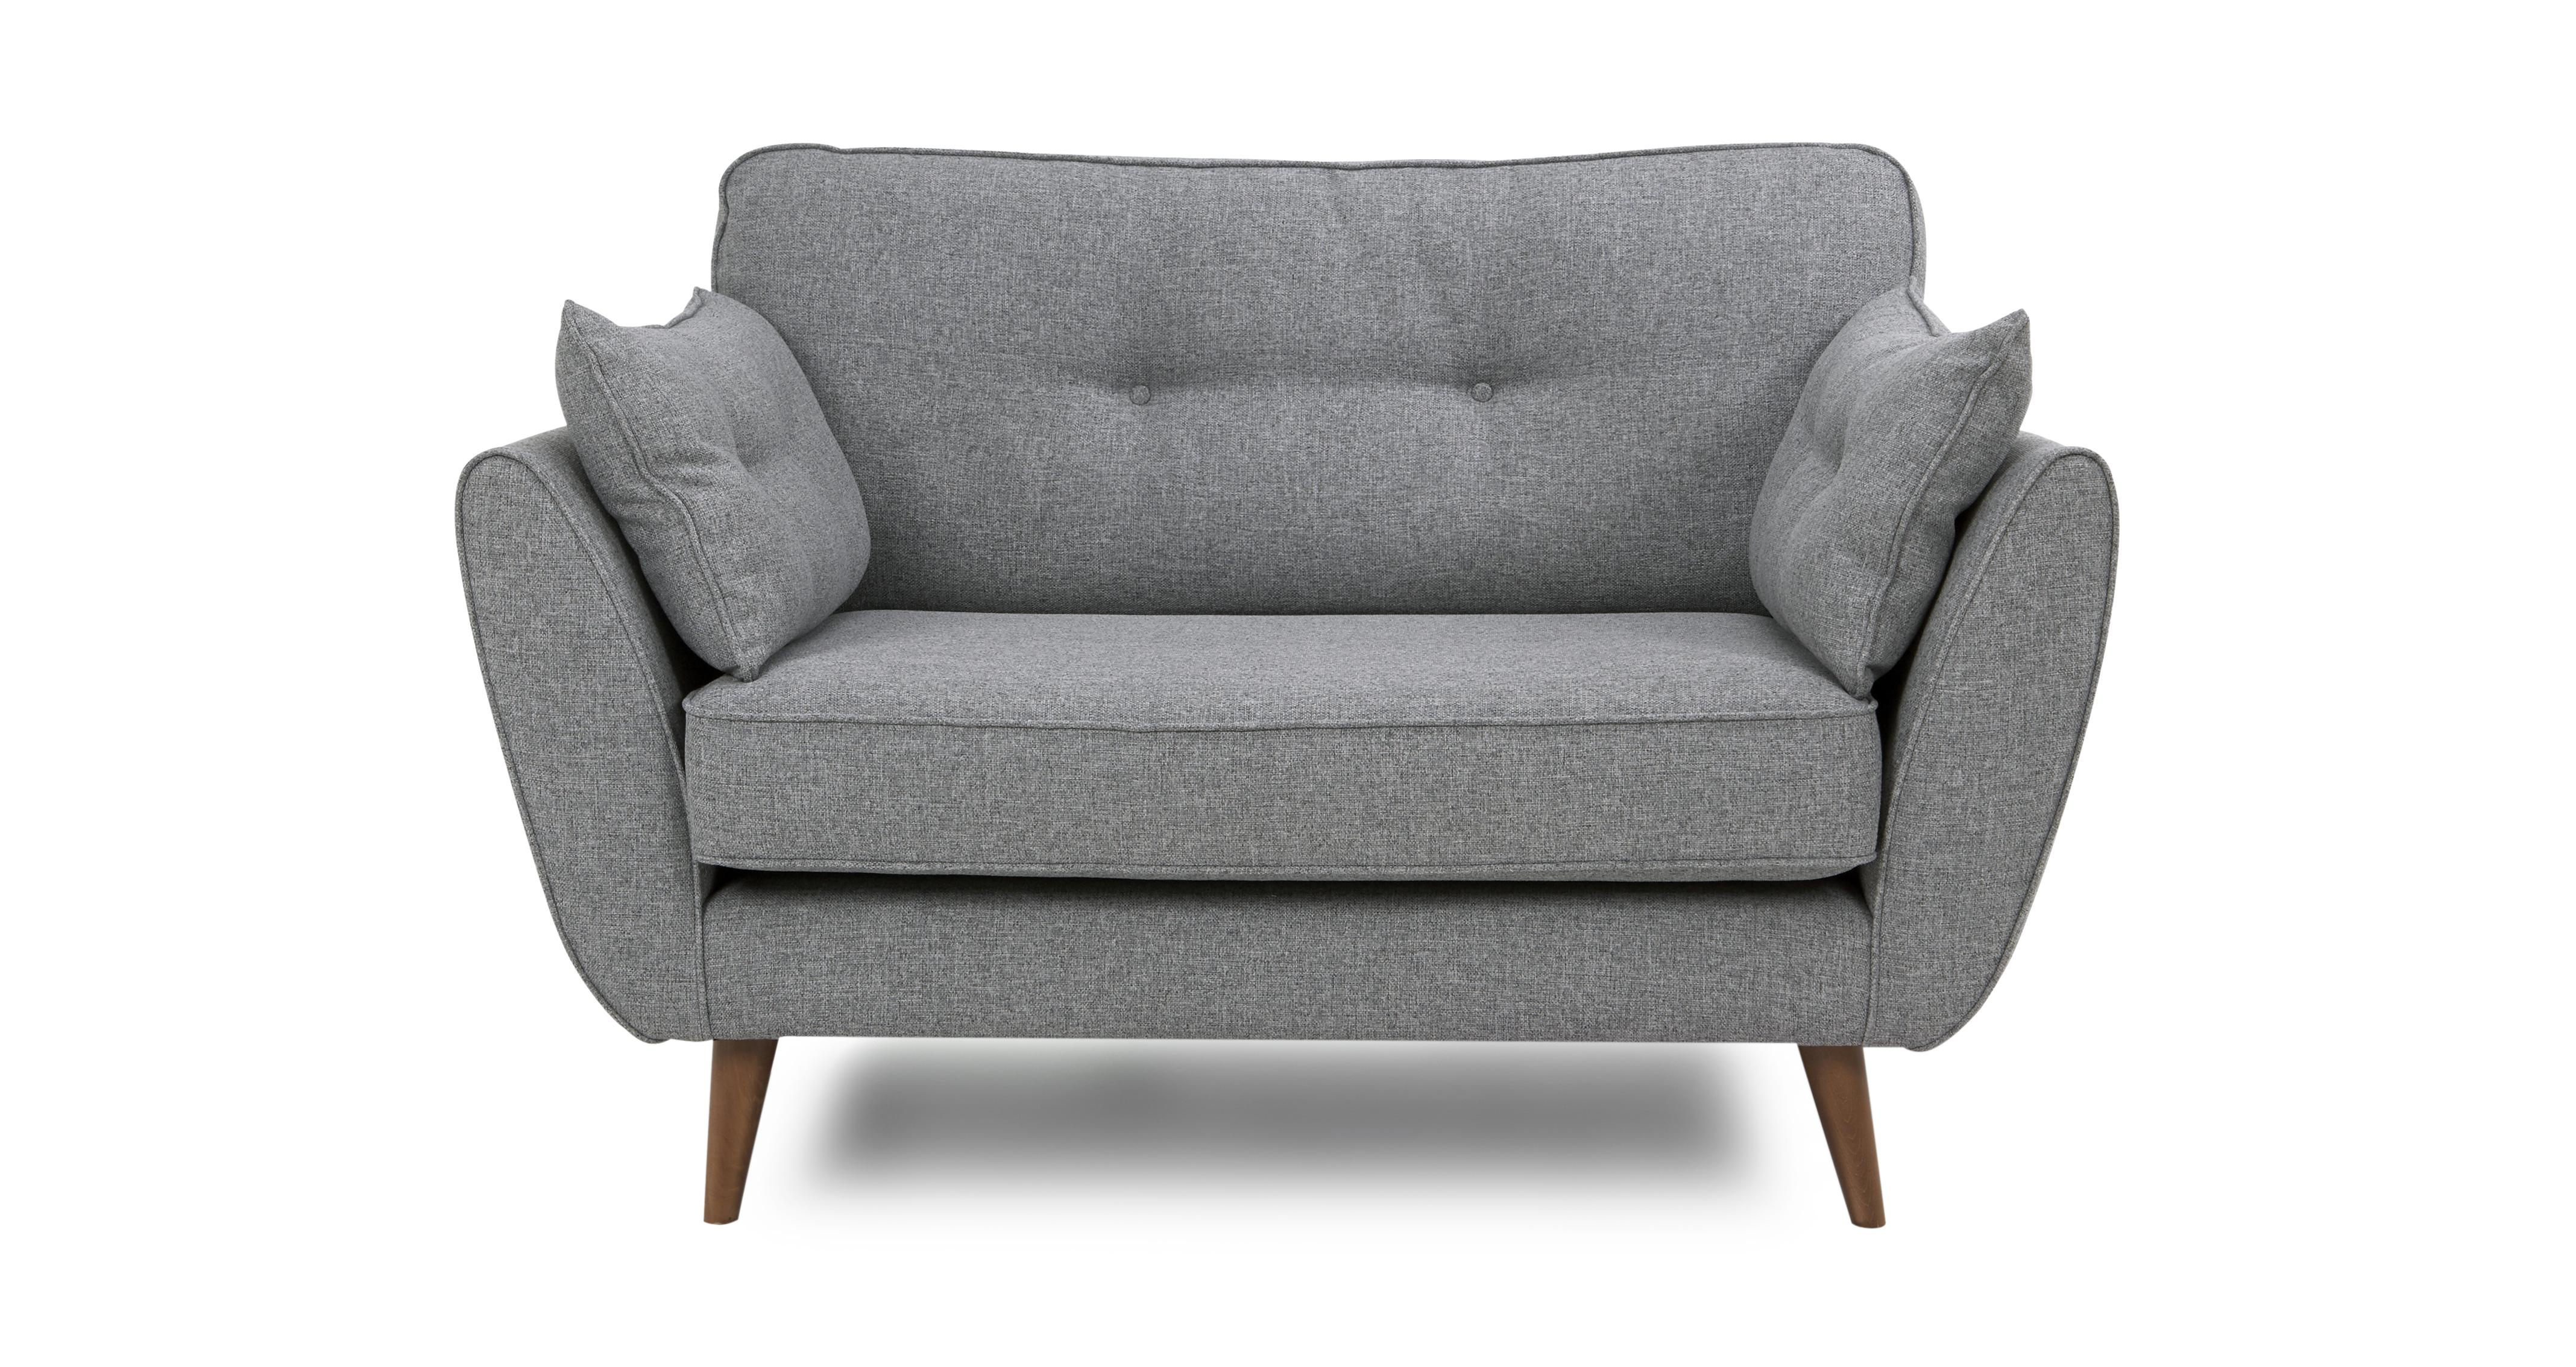 Chaise Darwin Chairs Chaise Longue Swivel And Snuggle Chairs Dfs